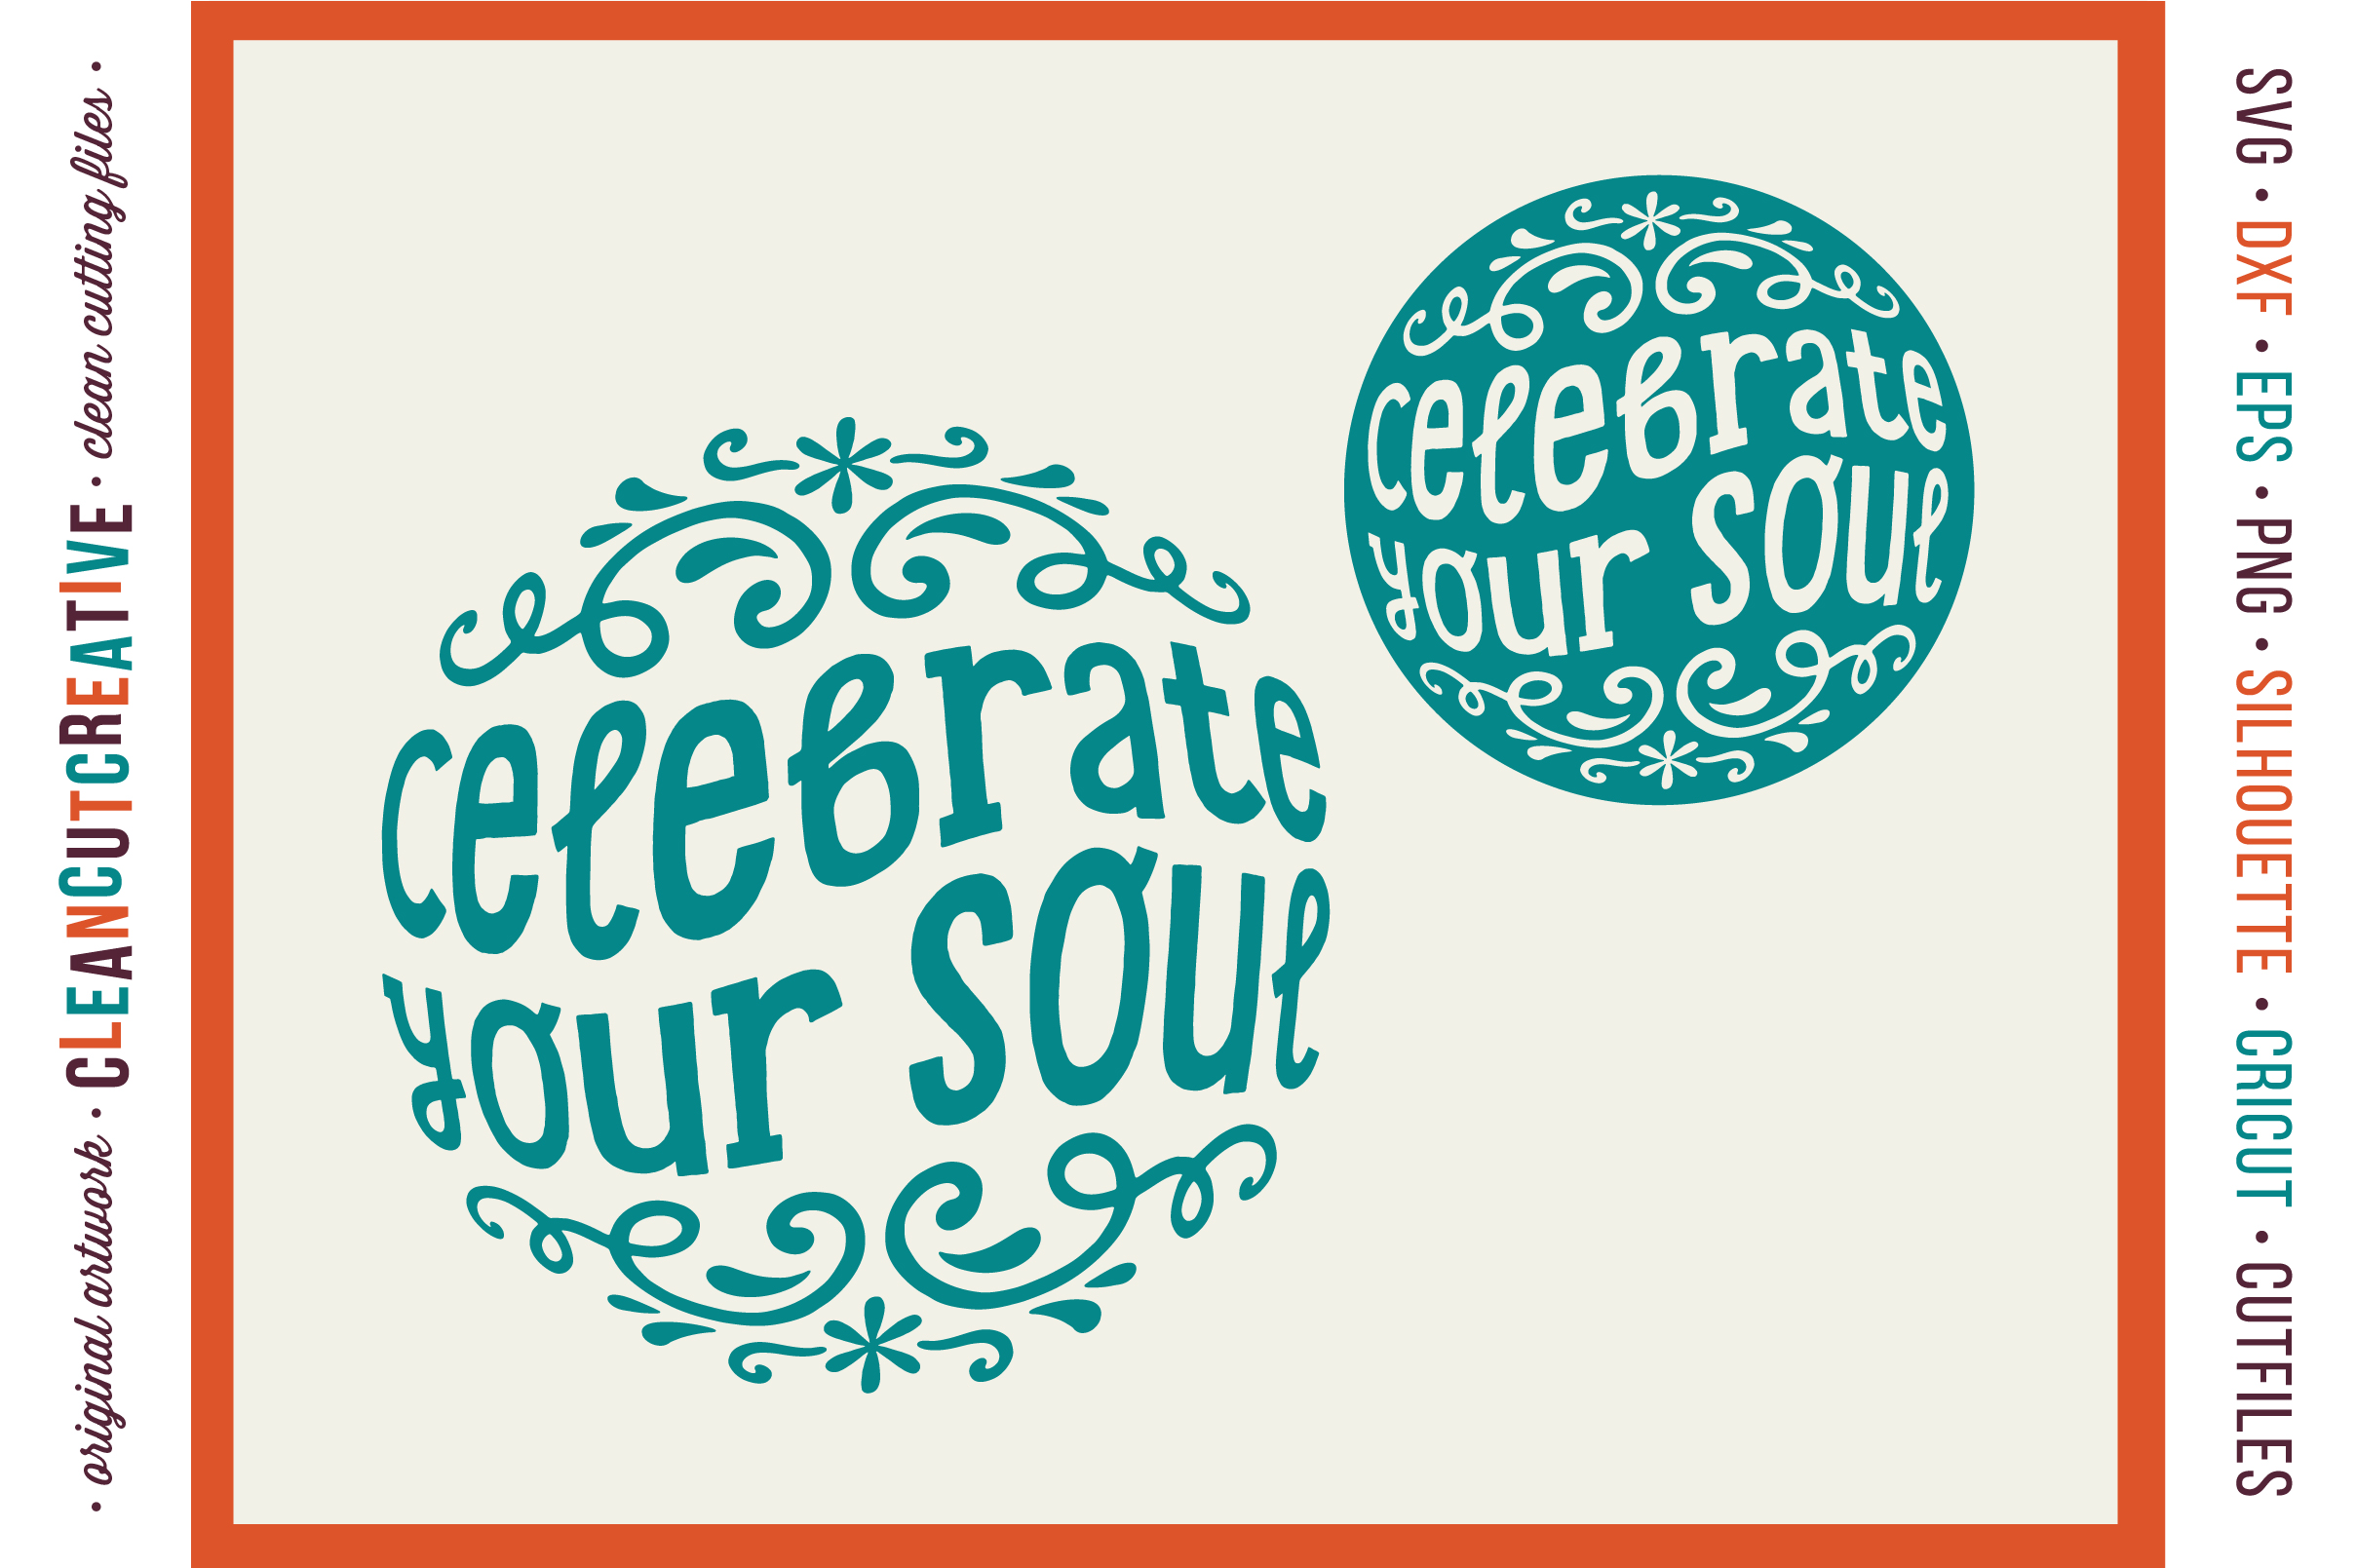 CELEBRATE YOUR SOUL! - Inspiring Quote design for crafters example image 1